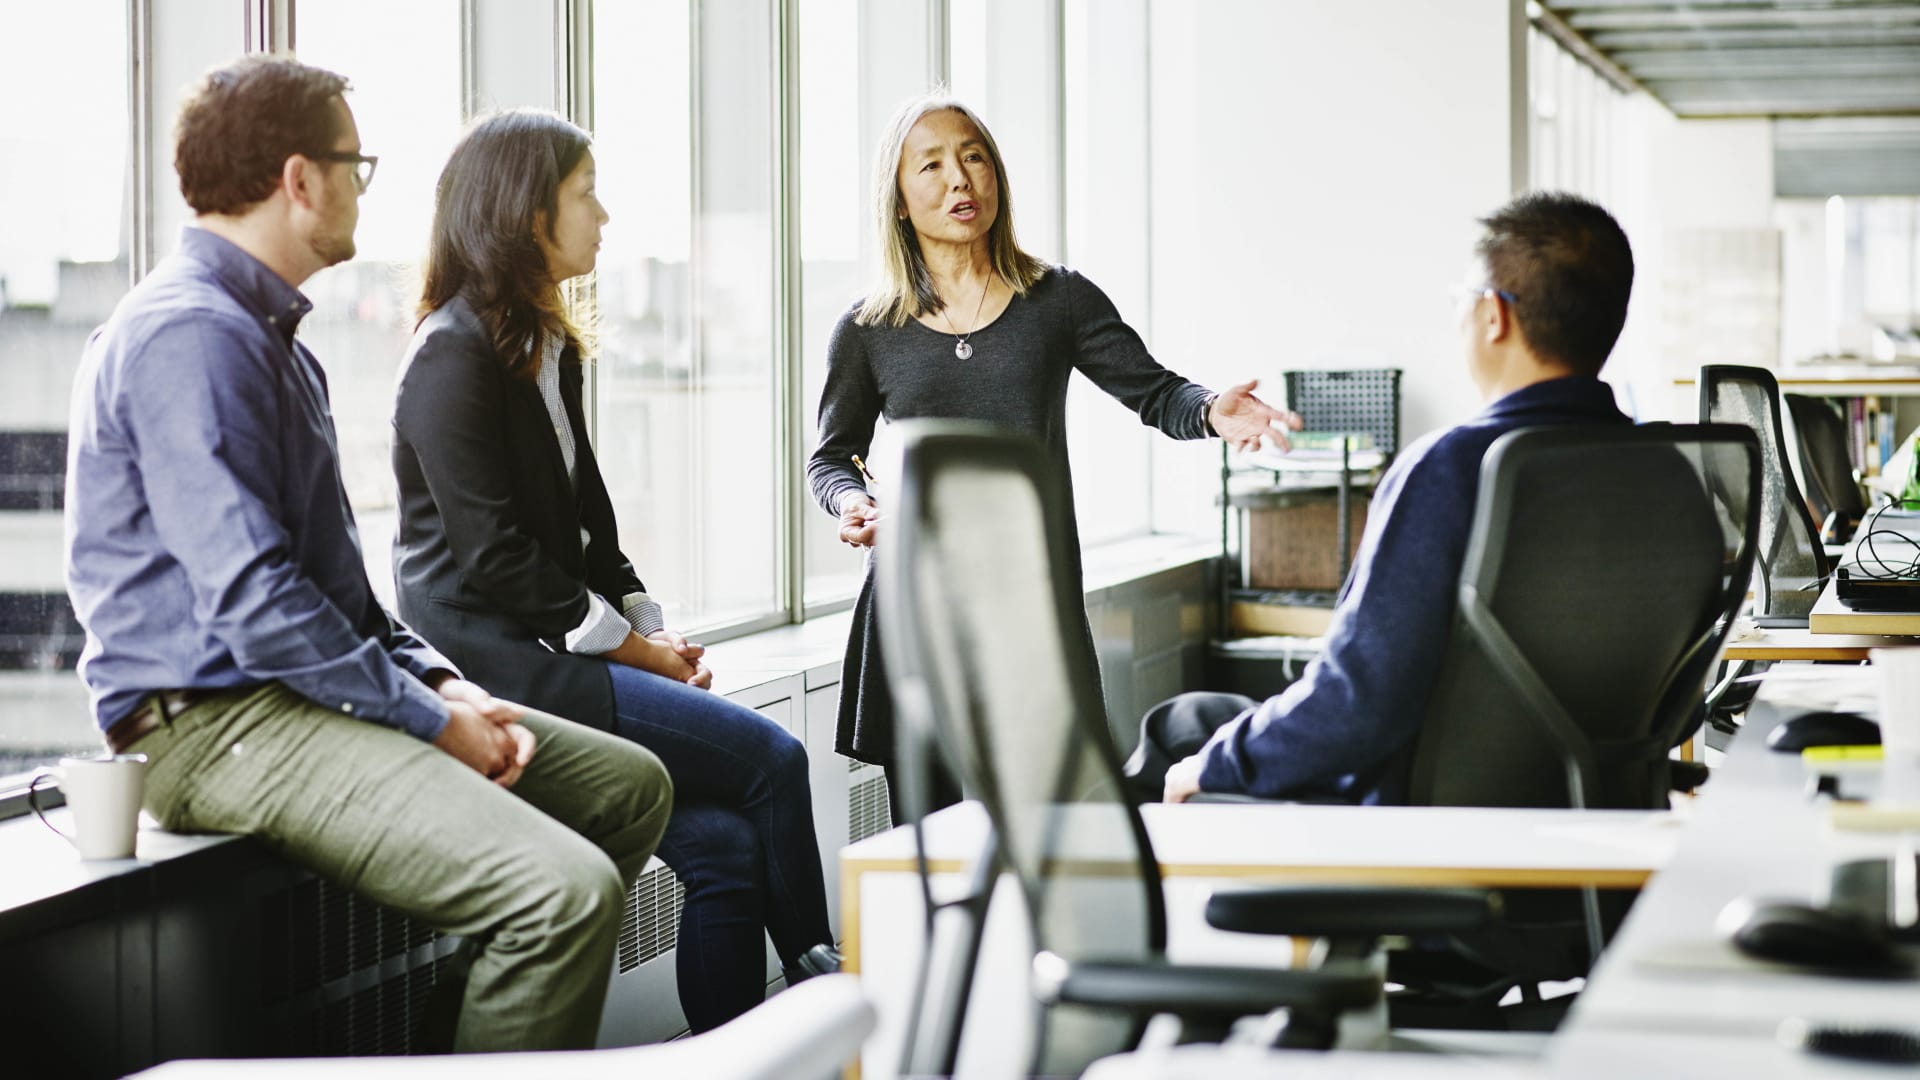 6 Methods to Reduce Employee Anxiety, and Meet Business Uncertainty